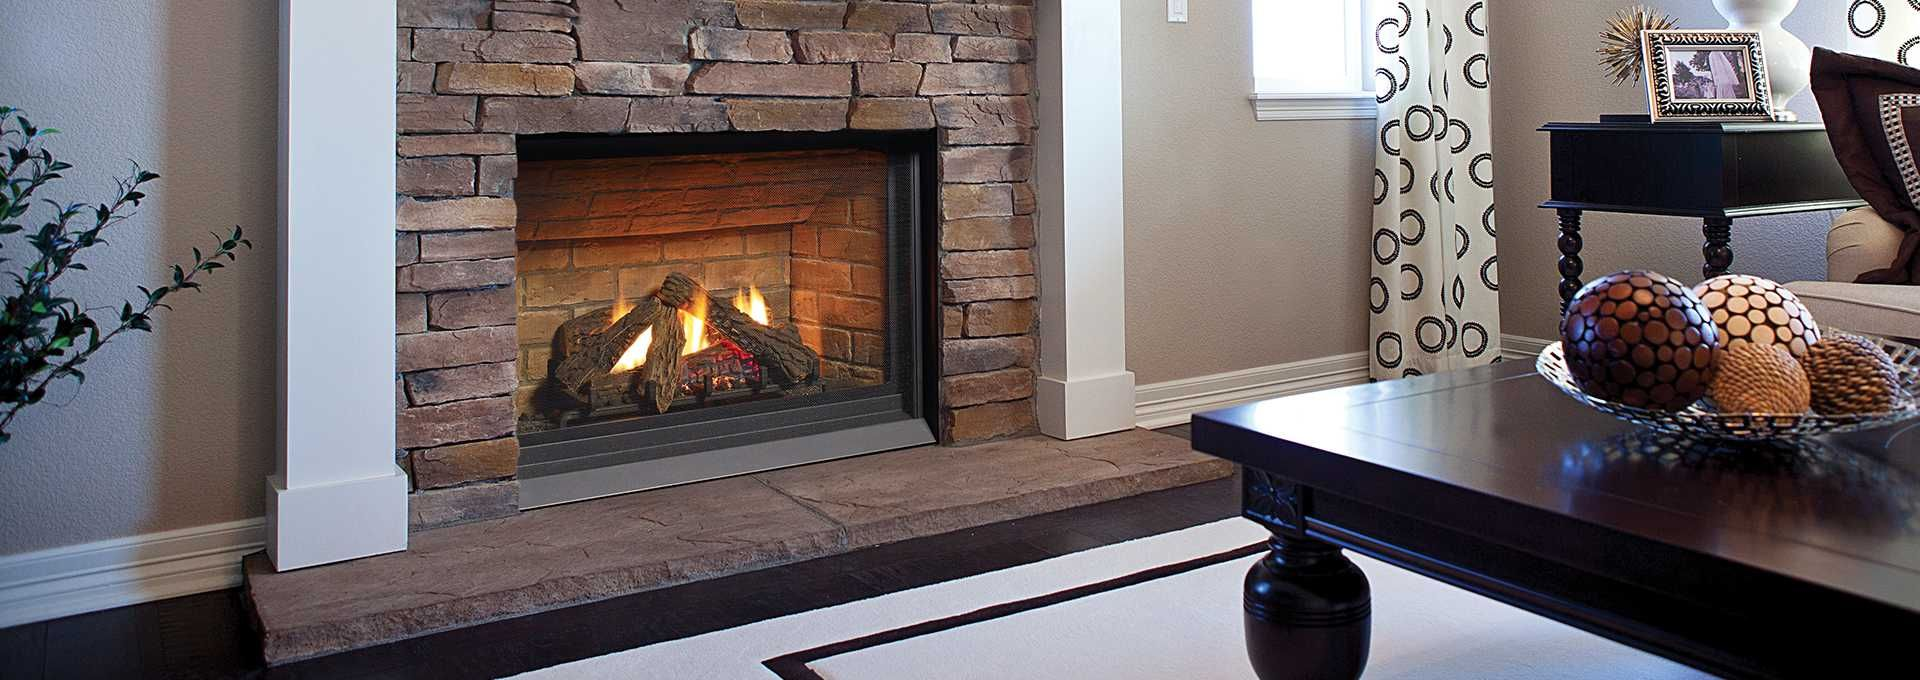 10 Perfect Gas Fireplace Insert Reviews For Your Cozy Home In